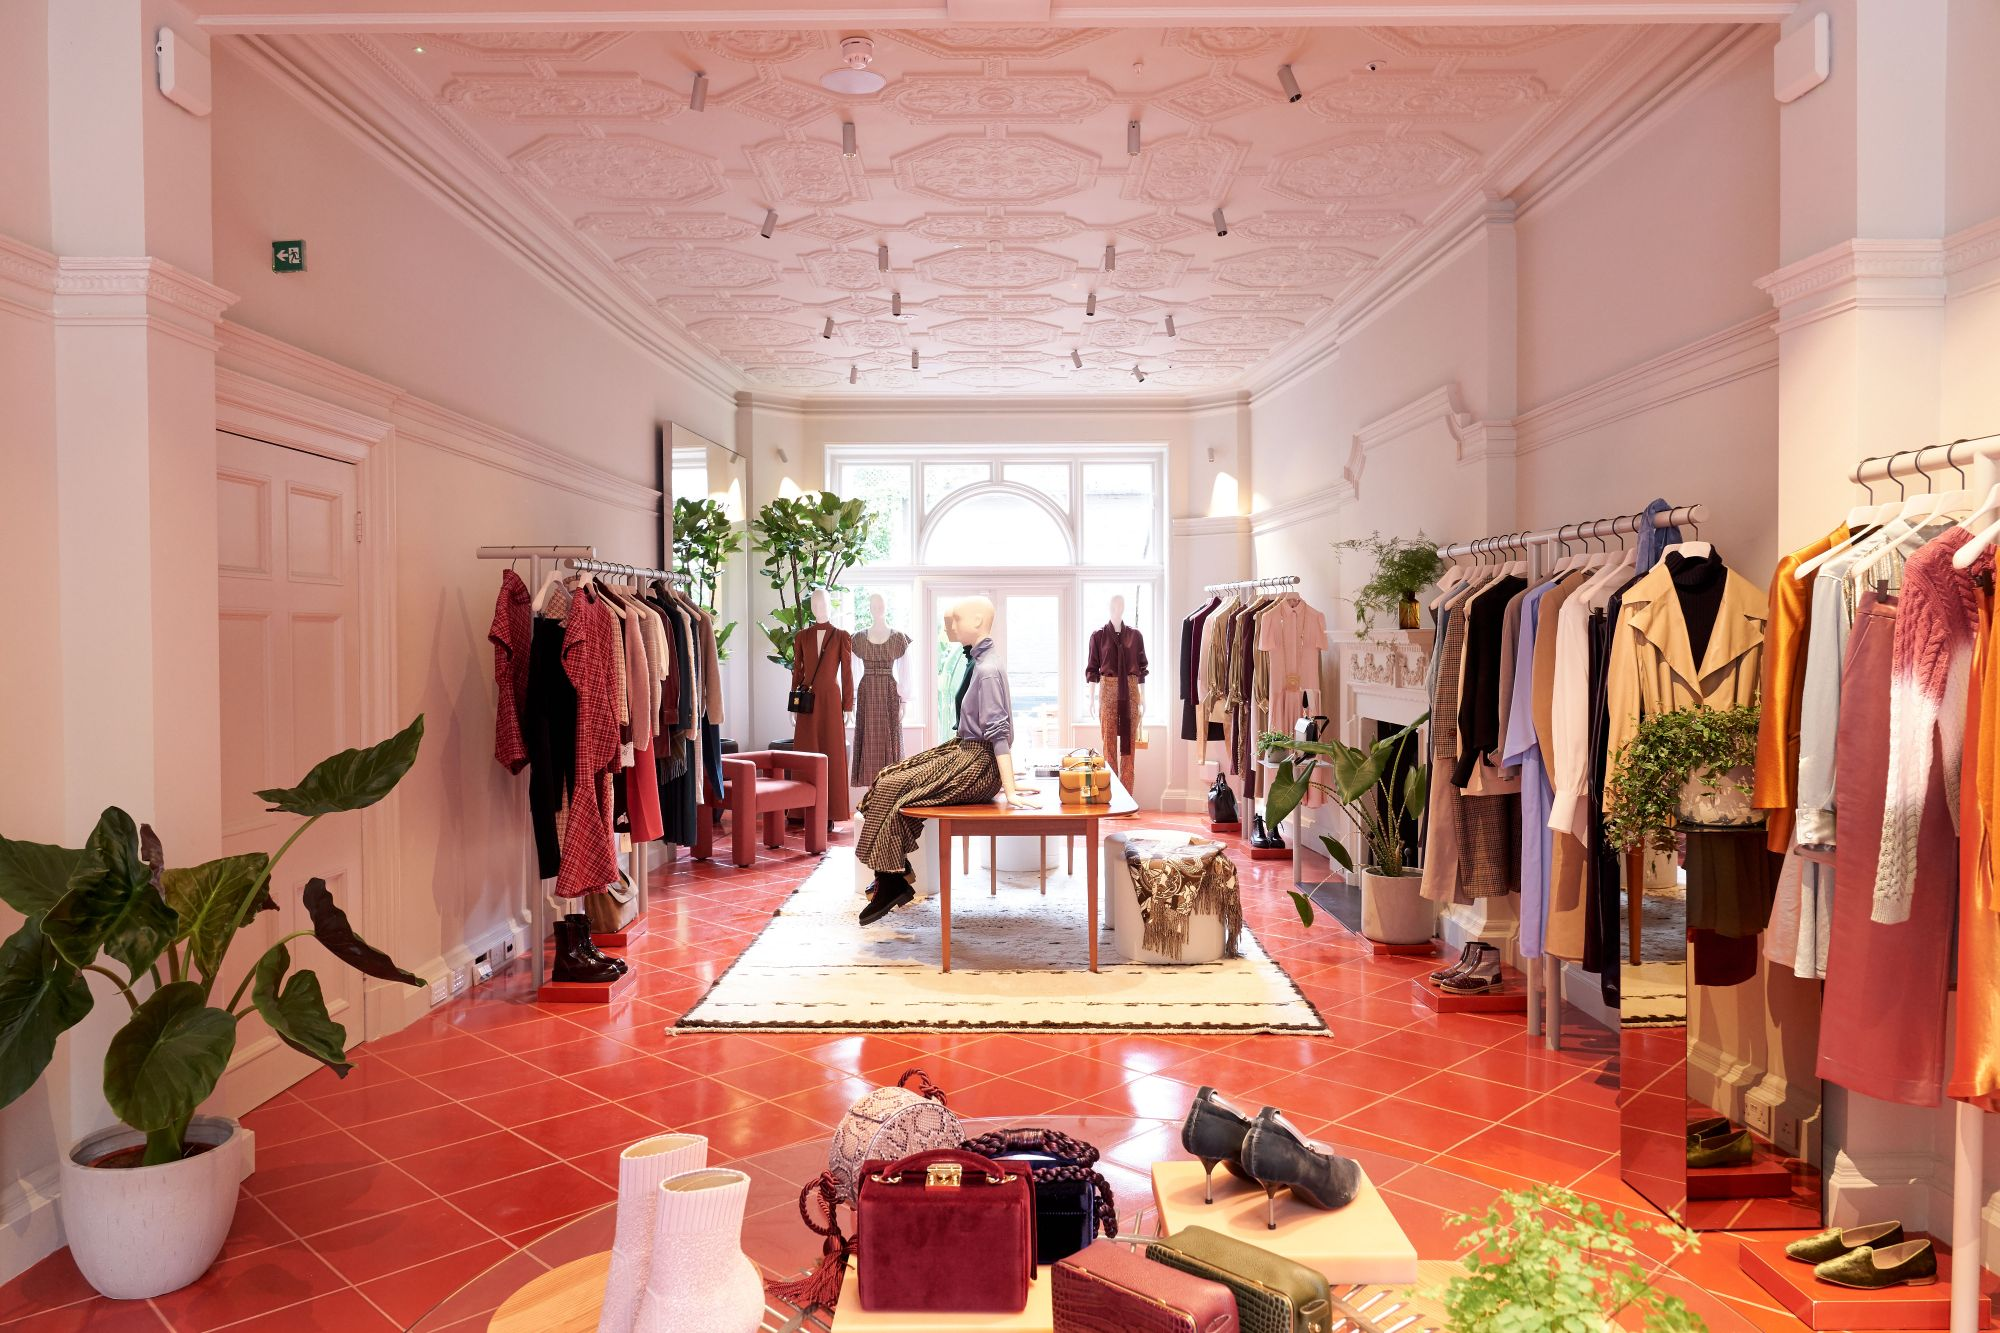 Everything You Need To Know About Matchesfashion.com's New Townhouse In London